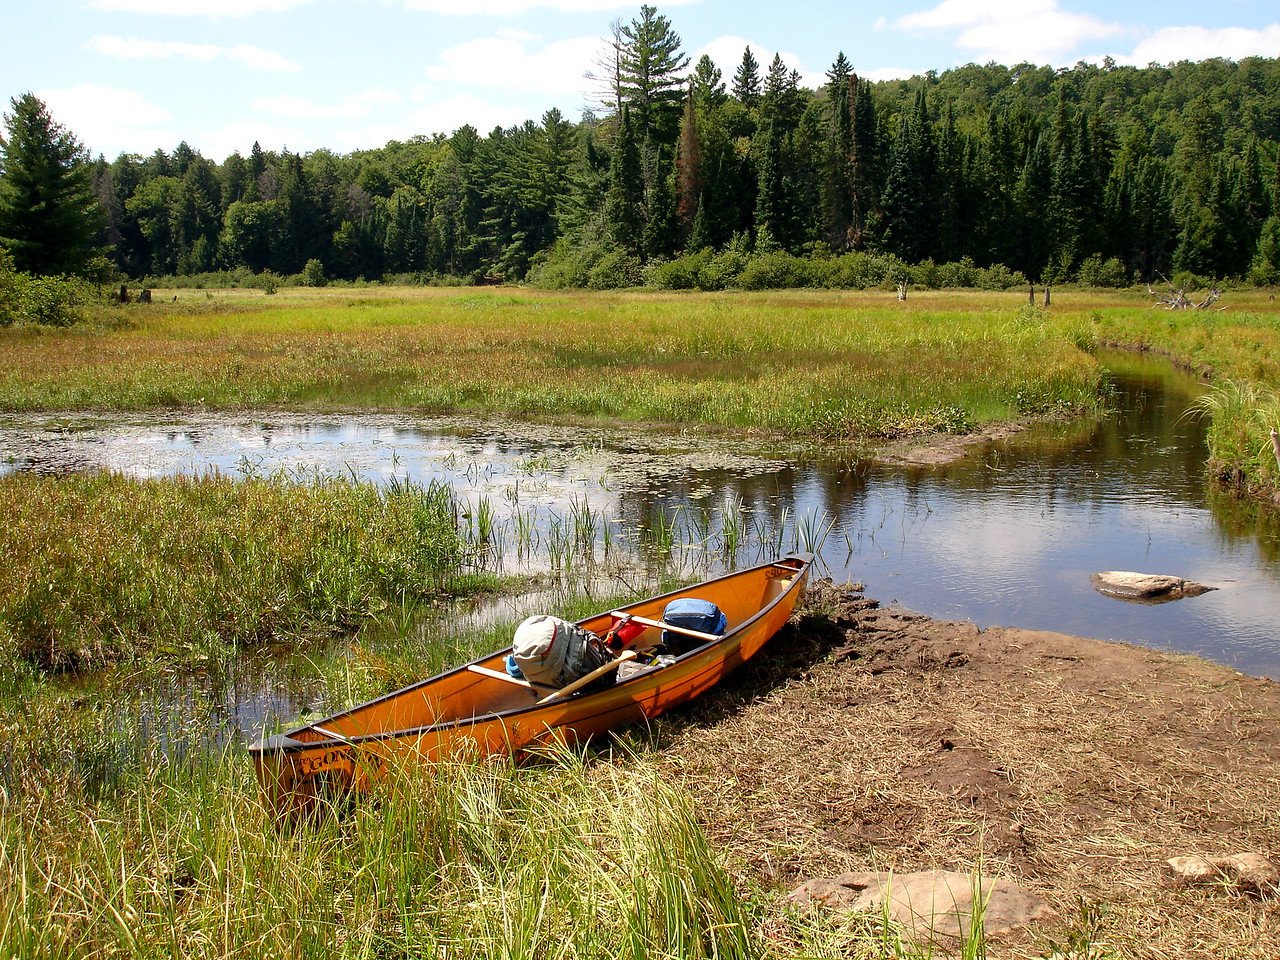 Now paddle up the channel on the right to the next portage take-out on the other side of the meadow.